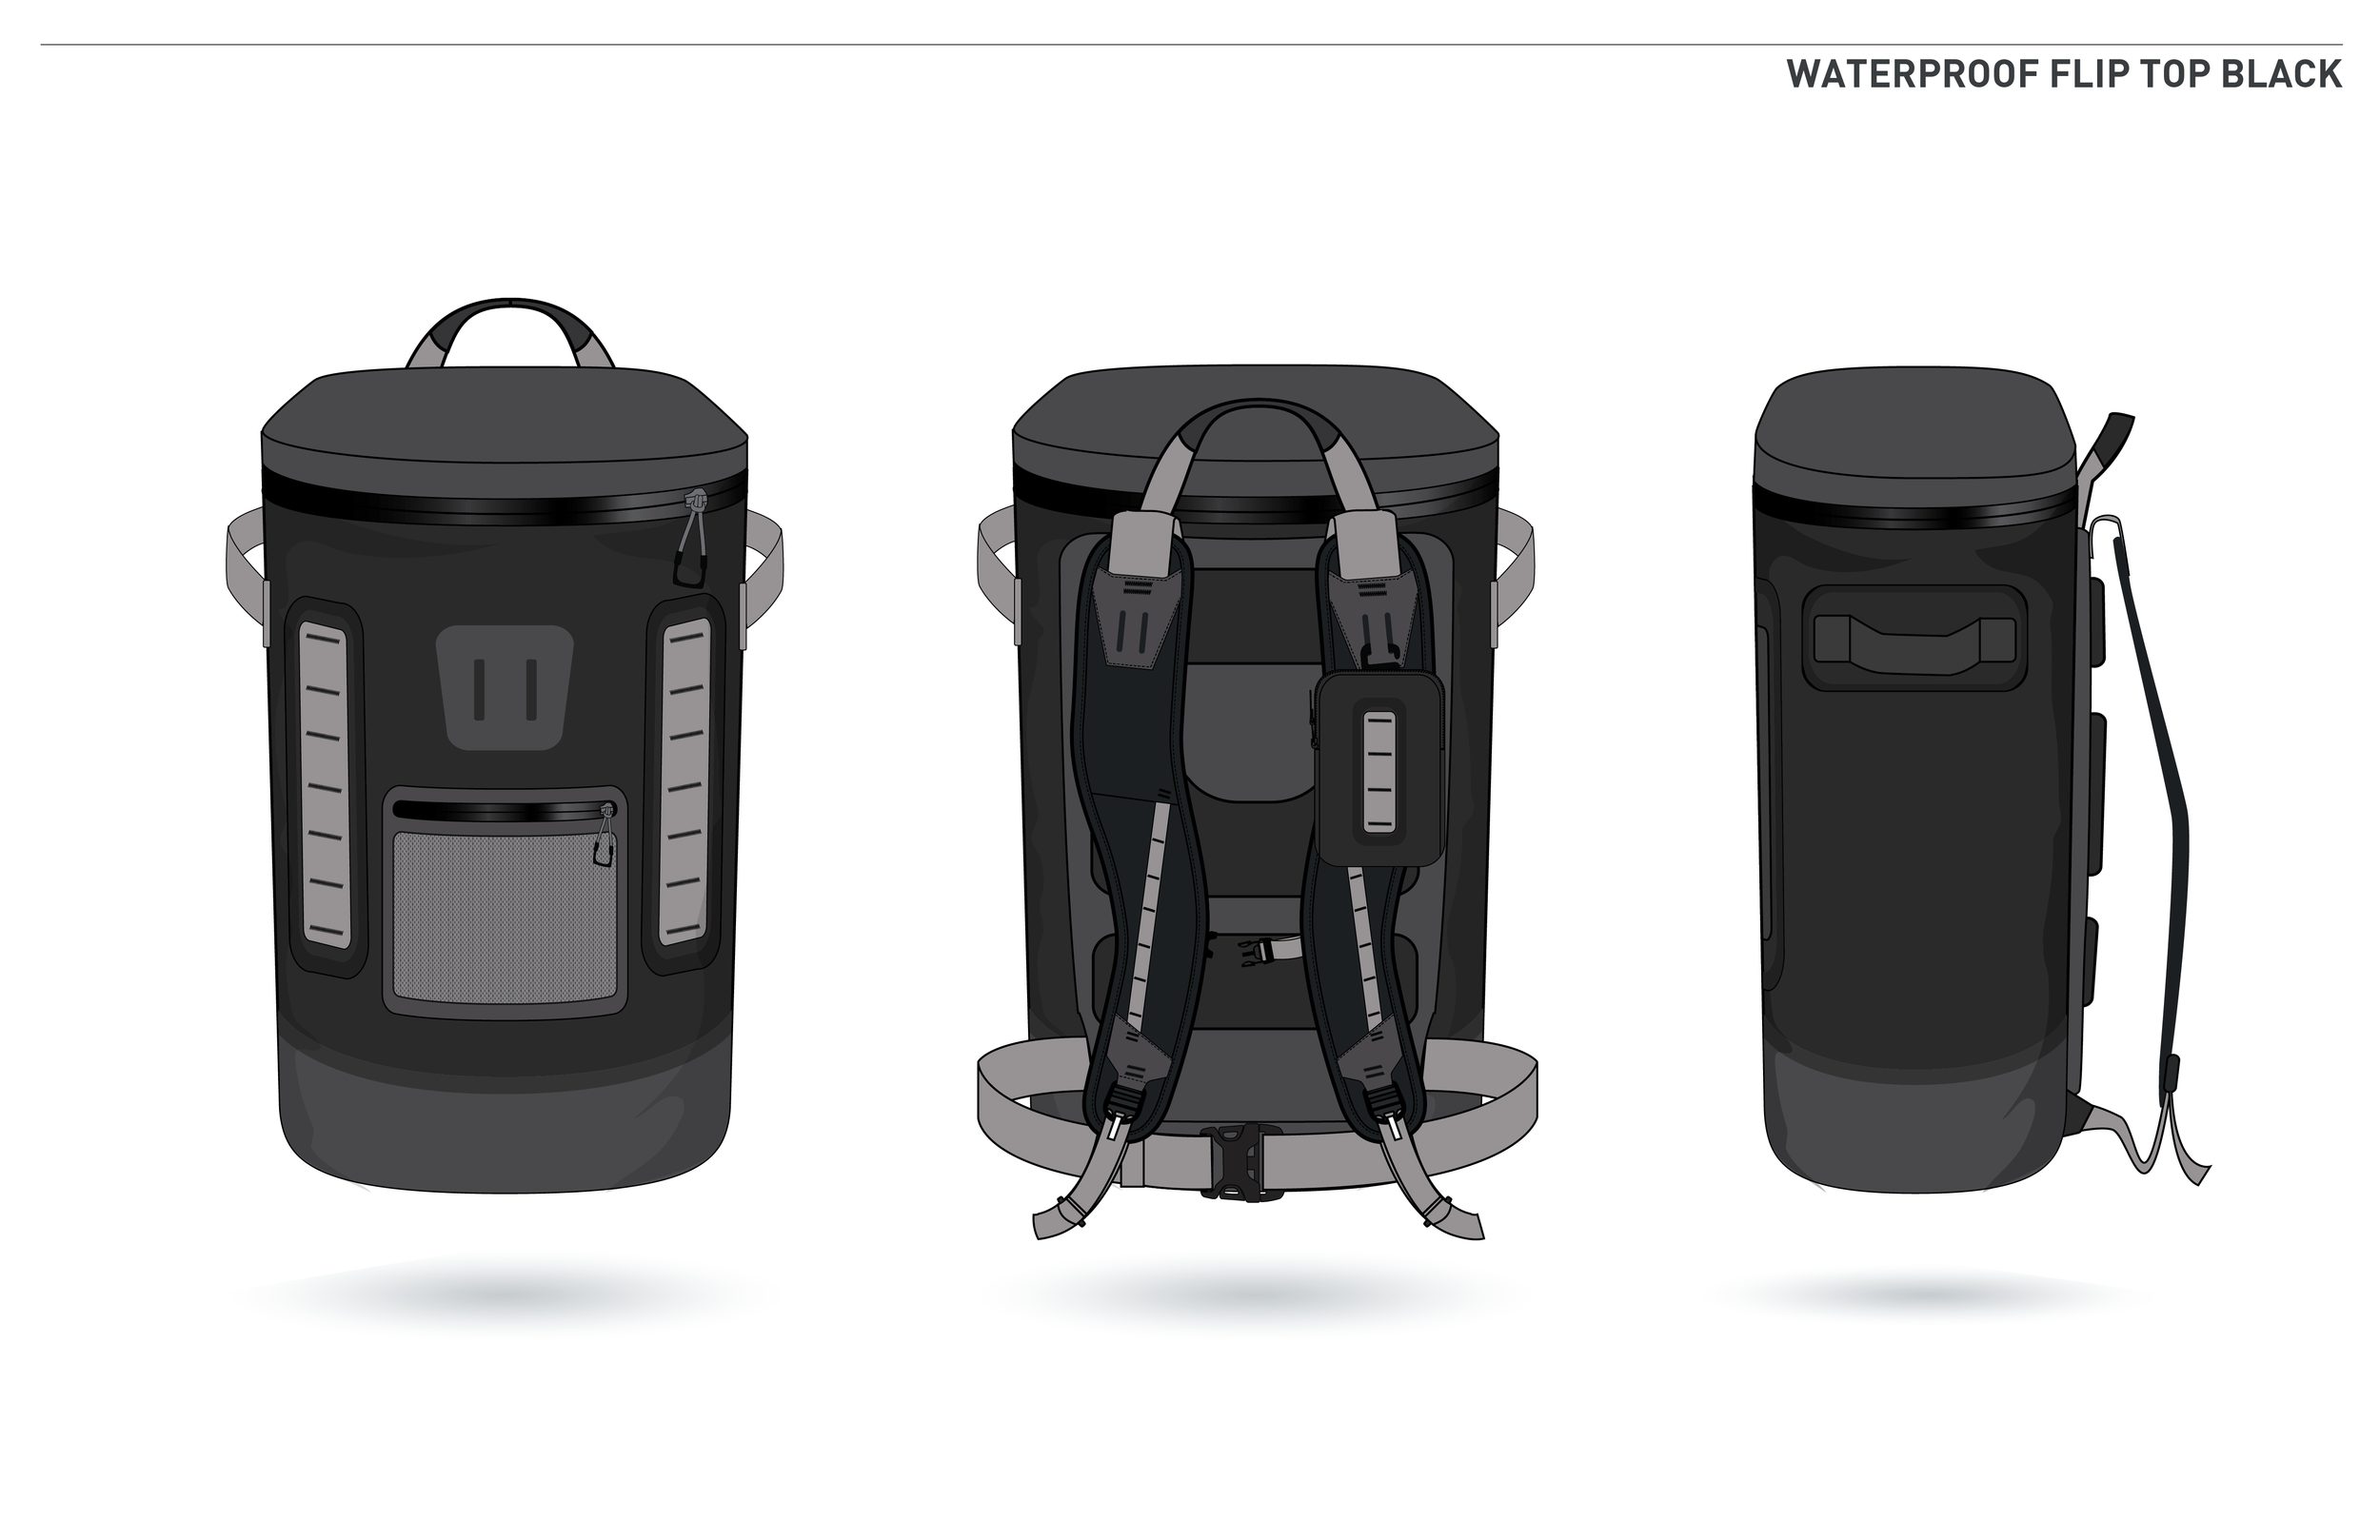 BAG_WATERPROOF 1 copy 9.png